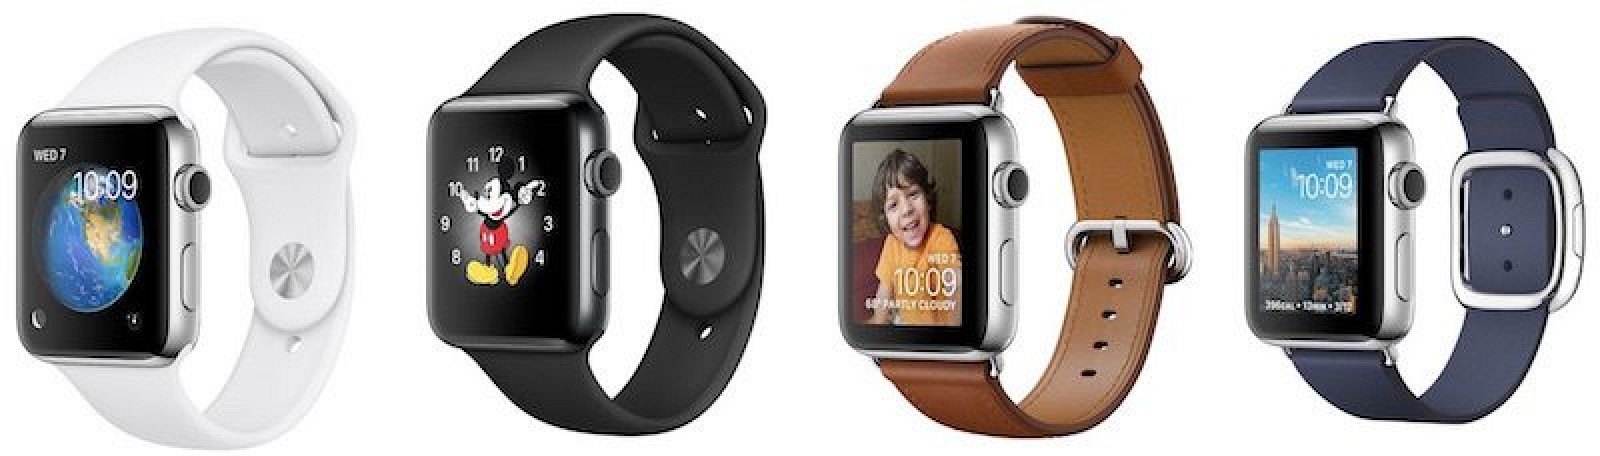 Apple's Series Three Apple Watch to Include Cellular Connection